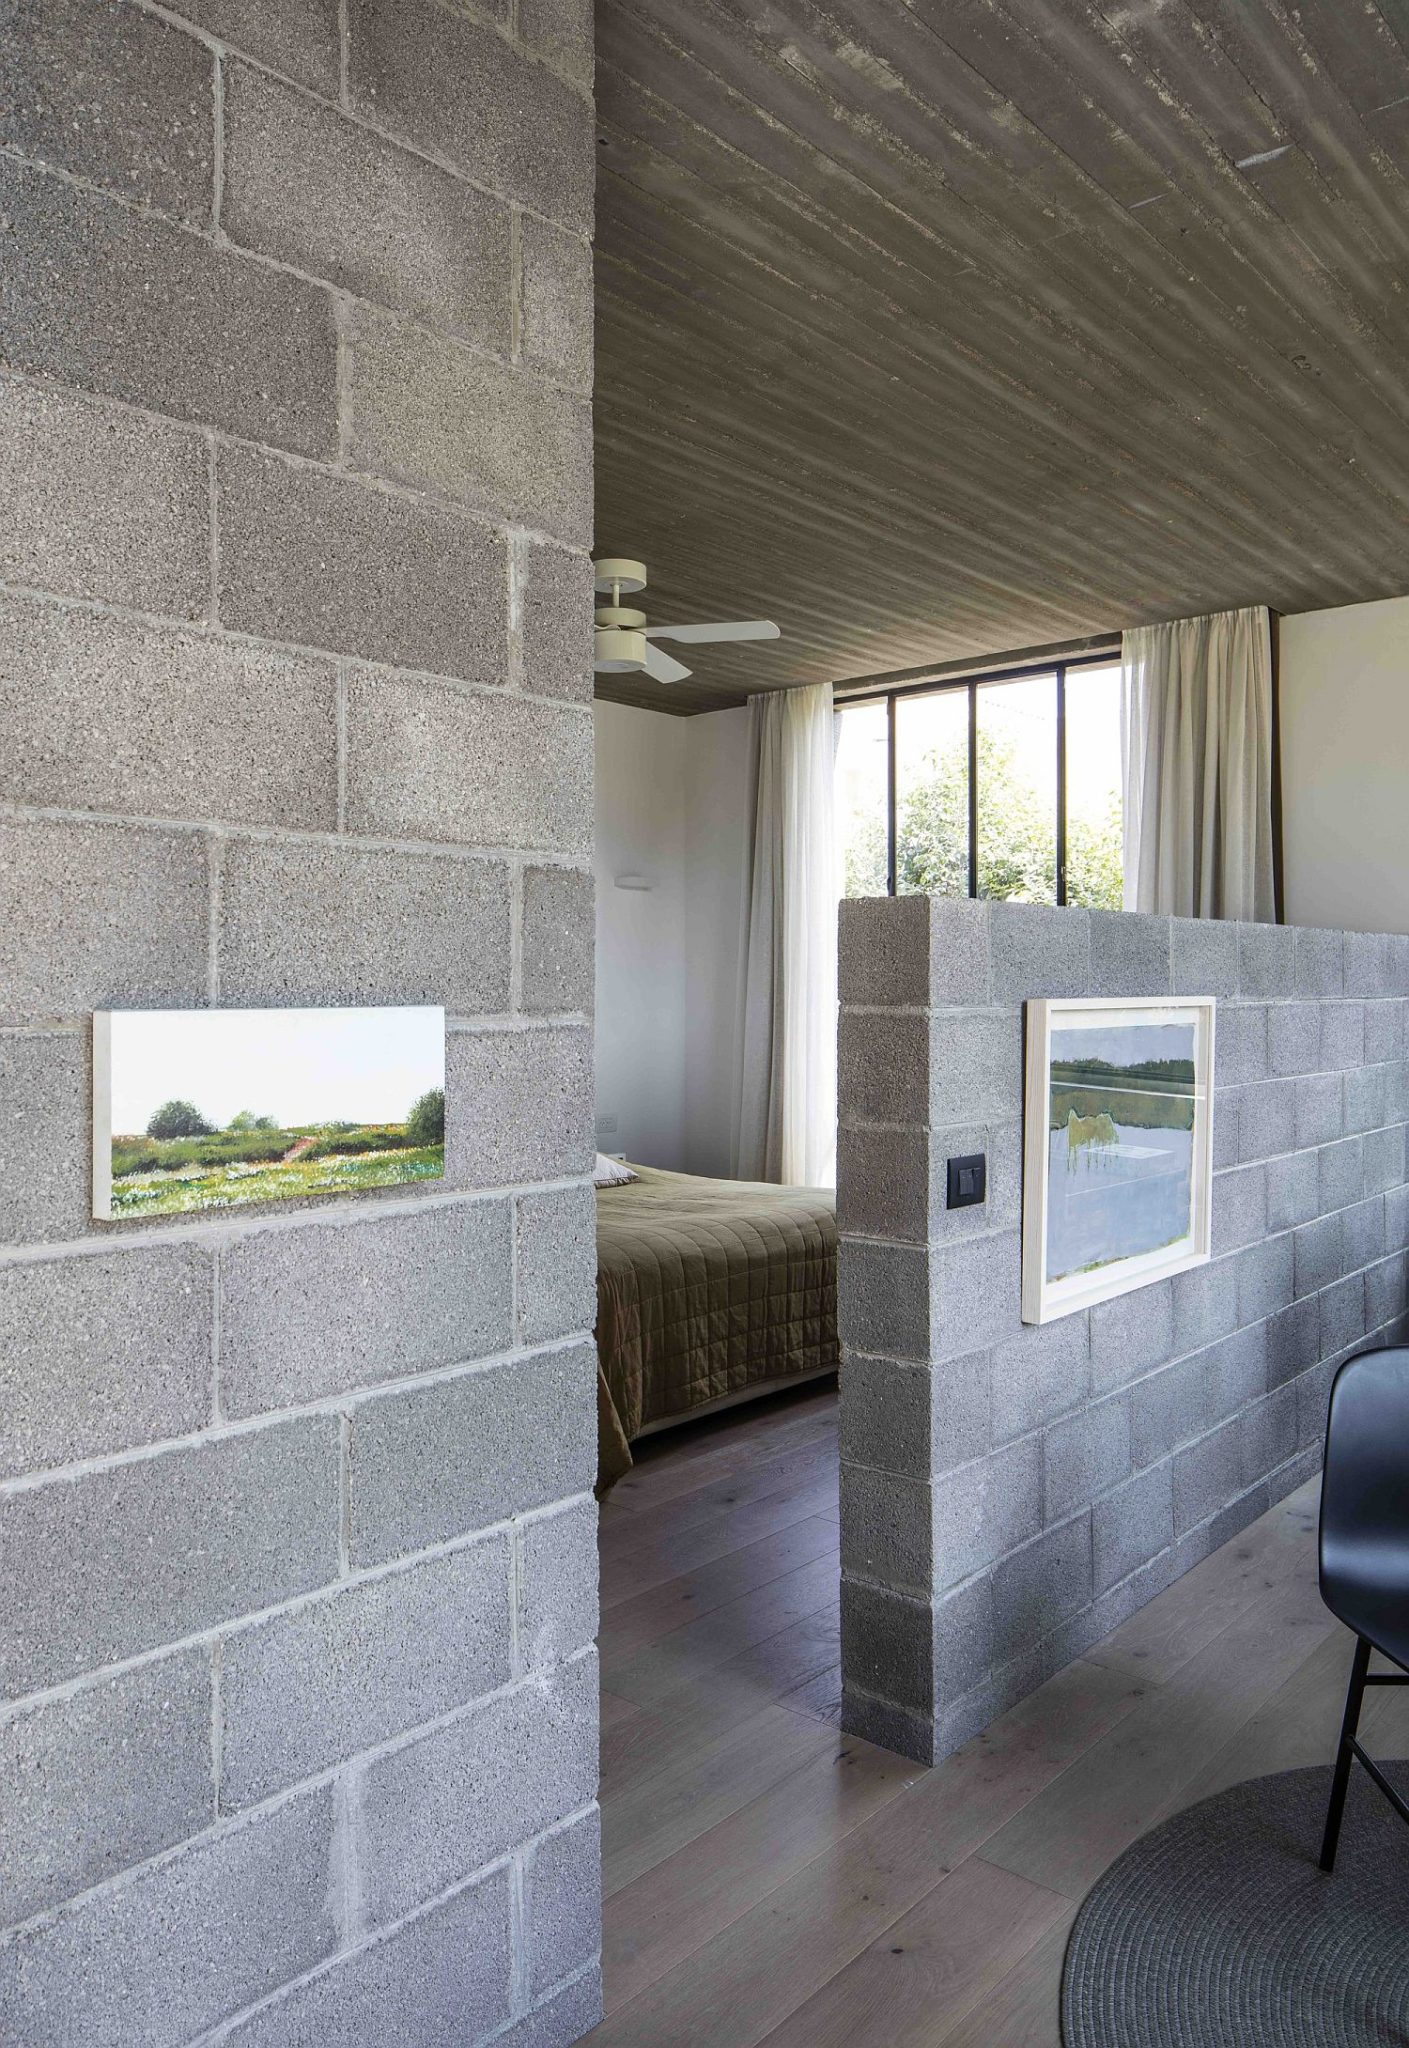 Half-wall delineates the bedroom from the master bath